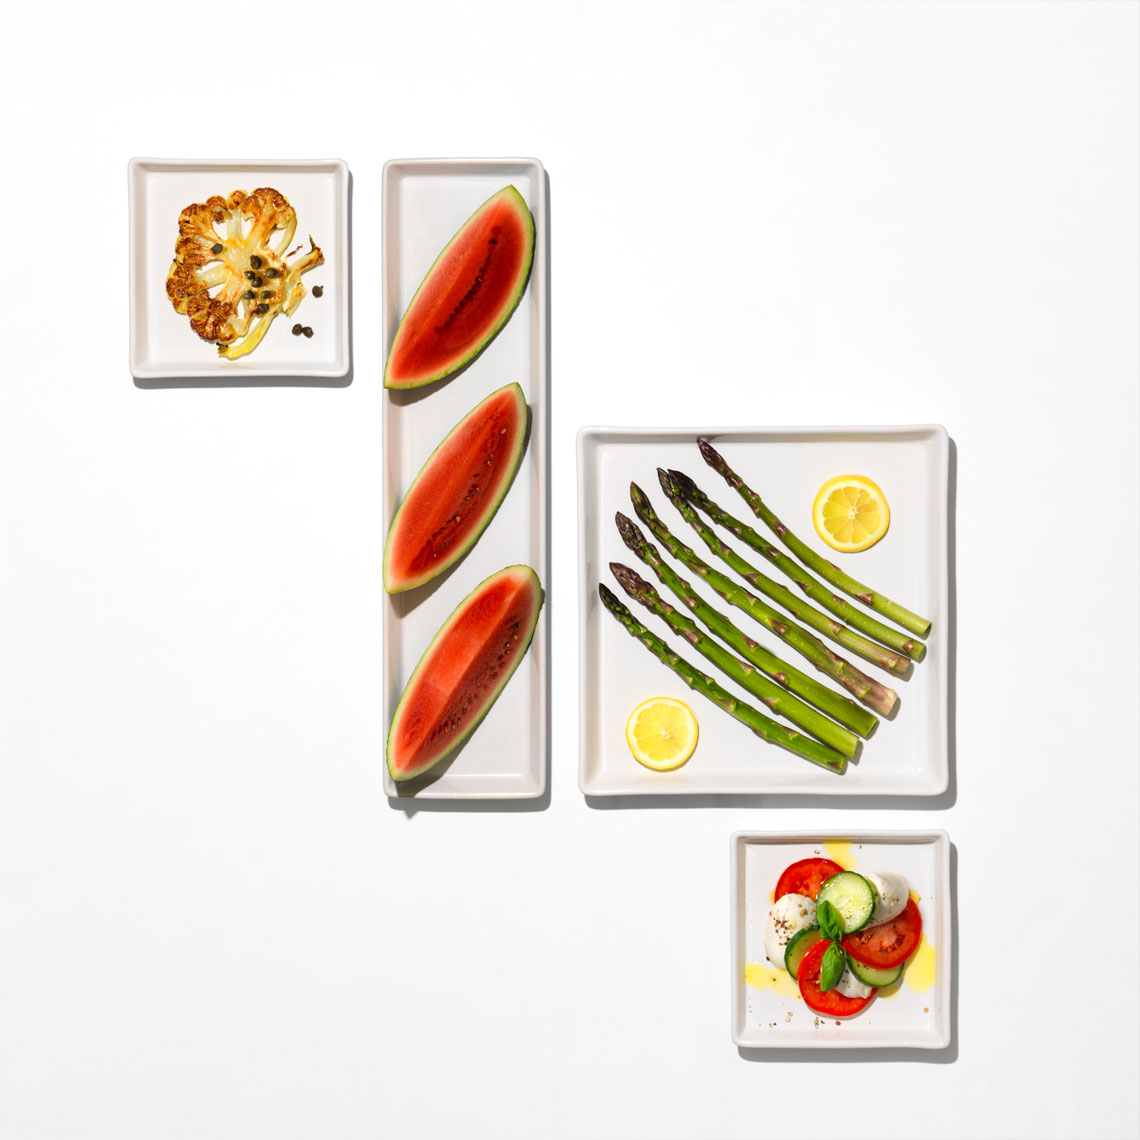 graphic arrangement of watermelon and asparagus on square plates